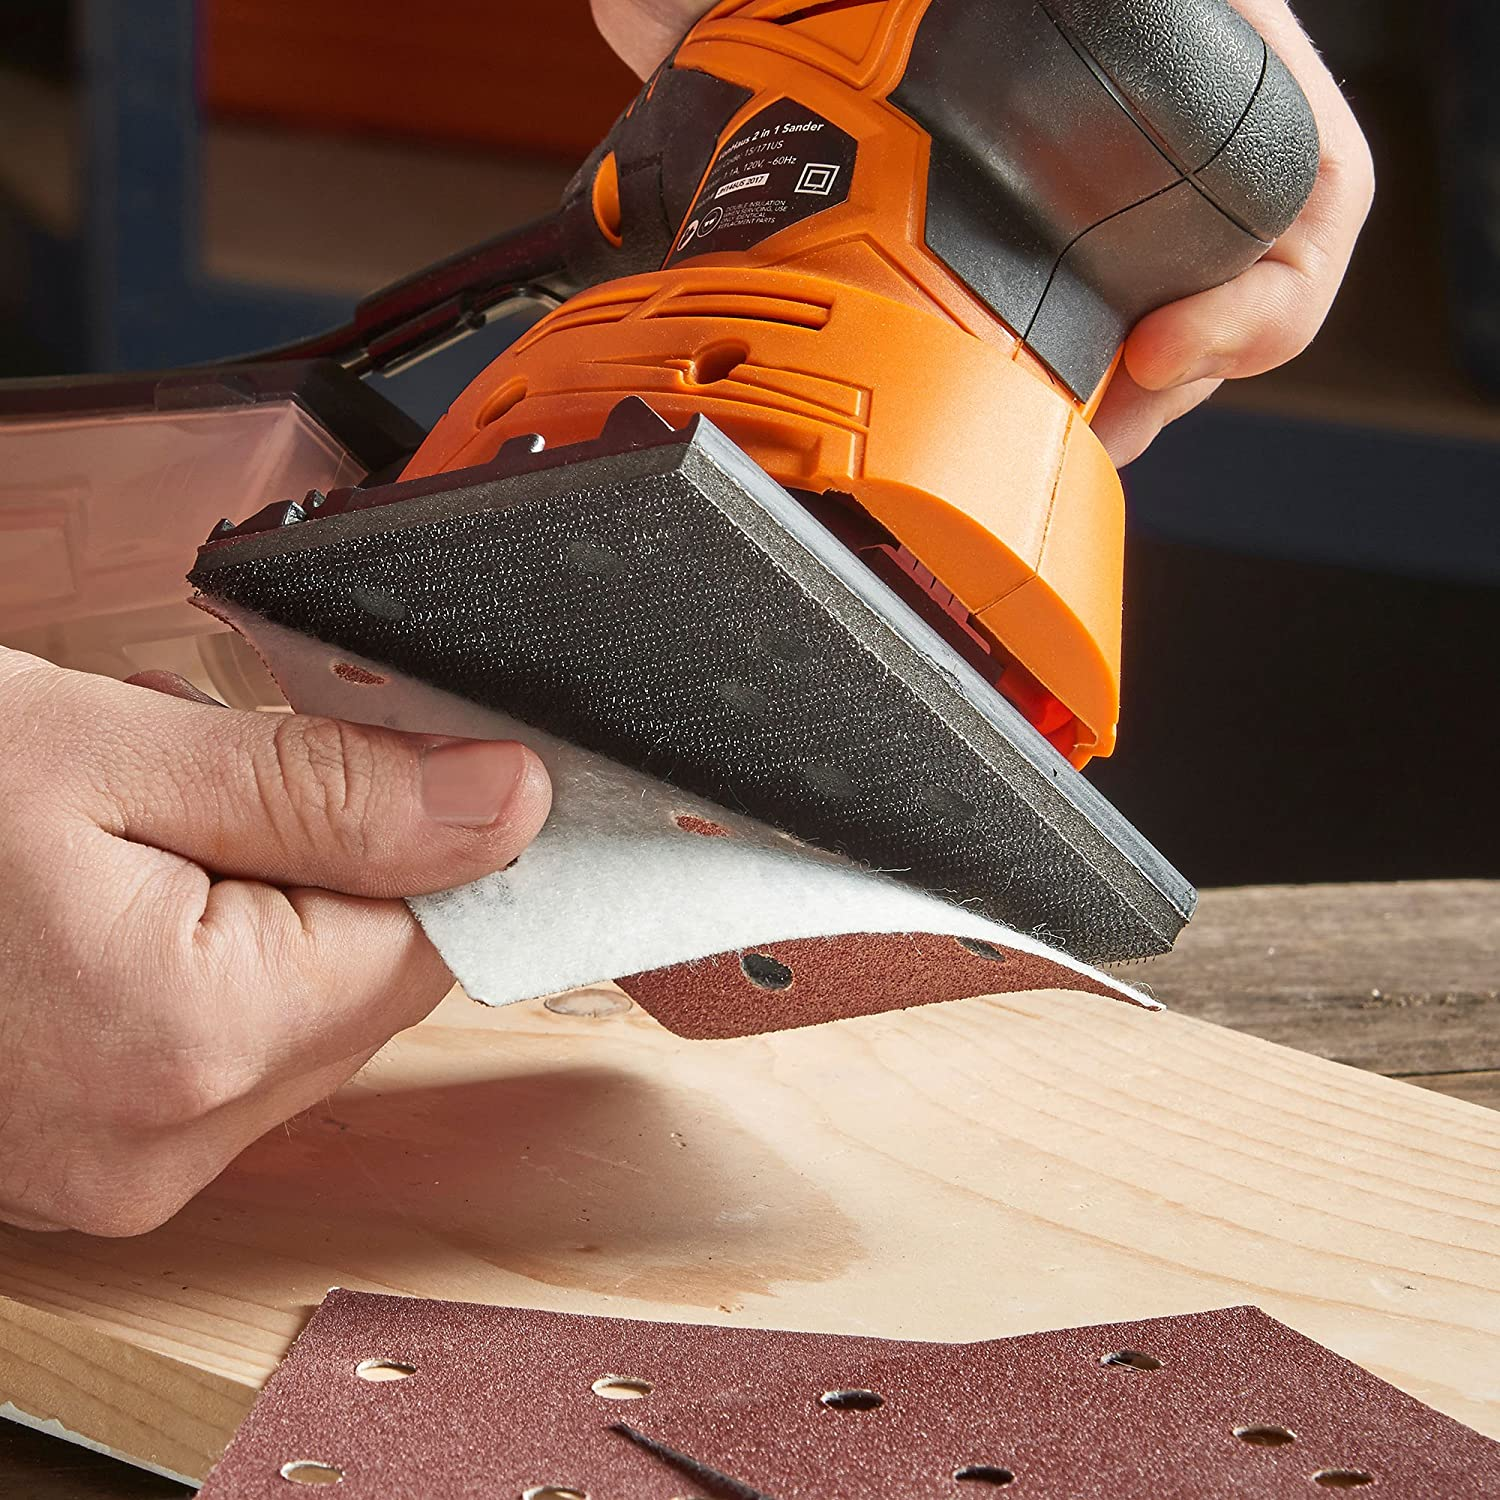 VonHaus Pack of 50 Sanding Sheets Only Compatible with the VonHaus 2 in 1 Sheet /& Detail Sander 15//171US DOMU Brands